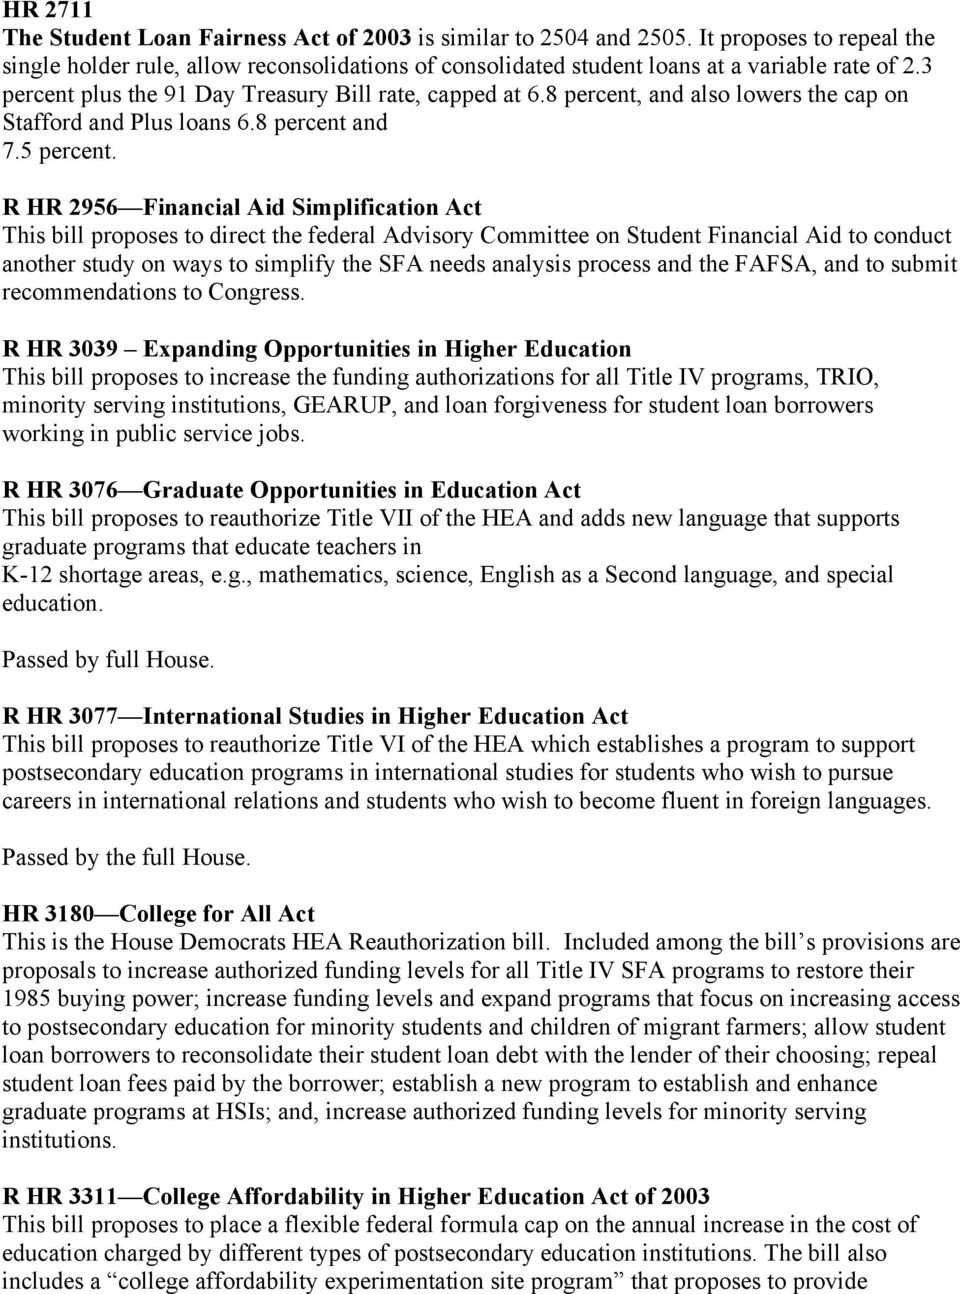 R HR 2956 Financial Aid Simplification Act This bill proposes to direct the federal Advisory Committee on Student Financial Aid to conduct another study on ways to simplify the SFA needs analysis